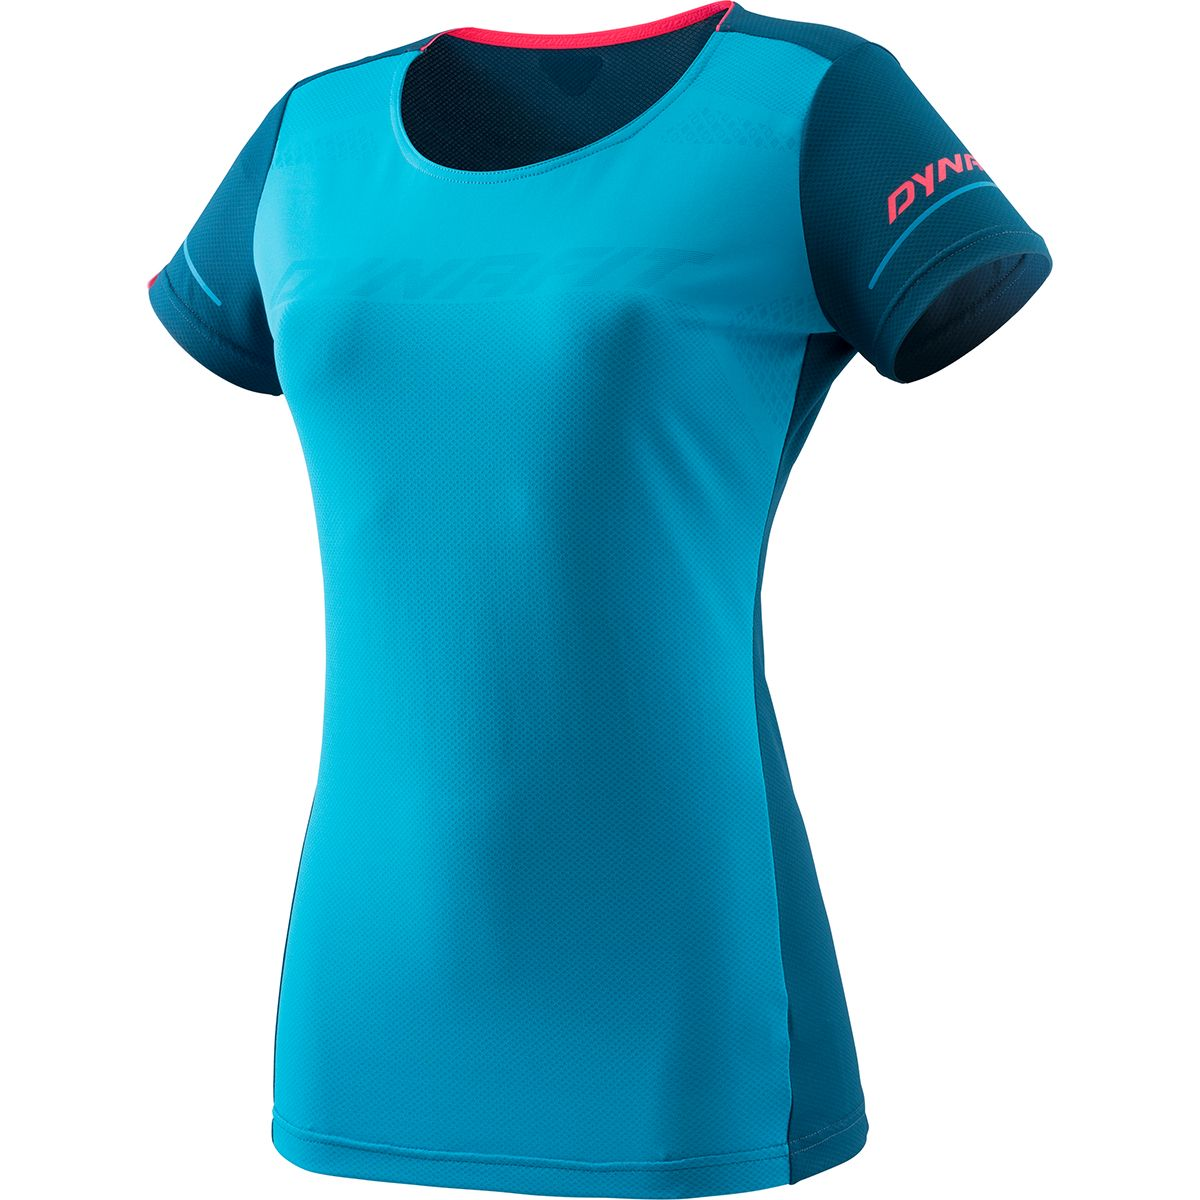 Dynafit Damen Alpine T-Shirt (Größe XL, Blau) | T-Shirts Funktion > Damen